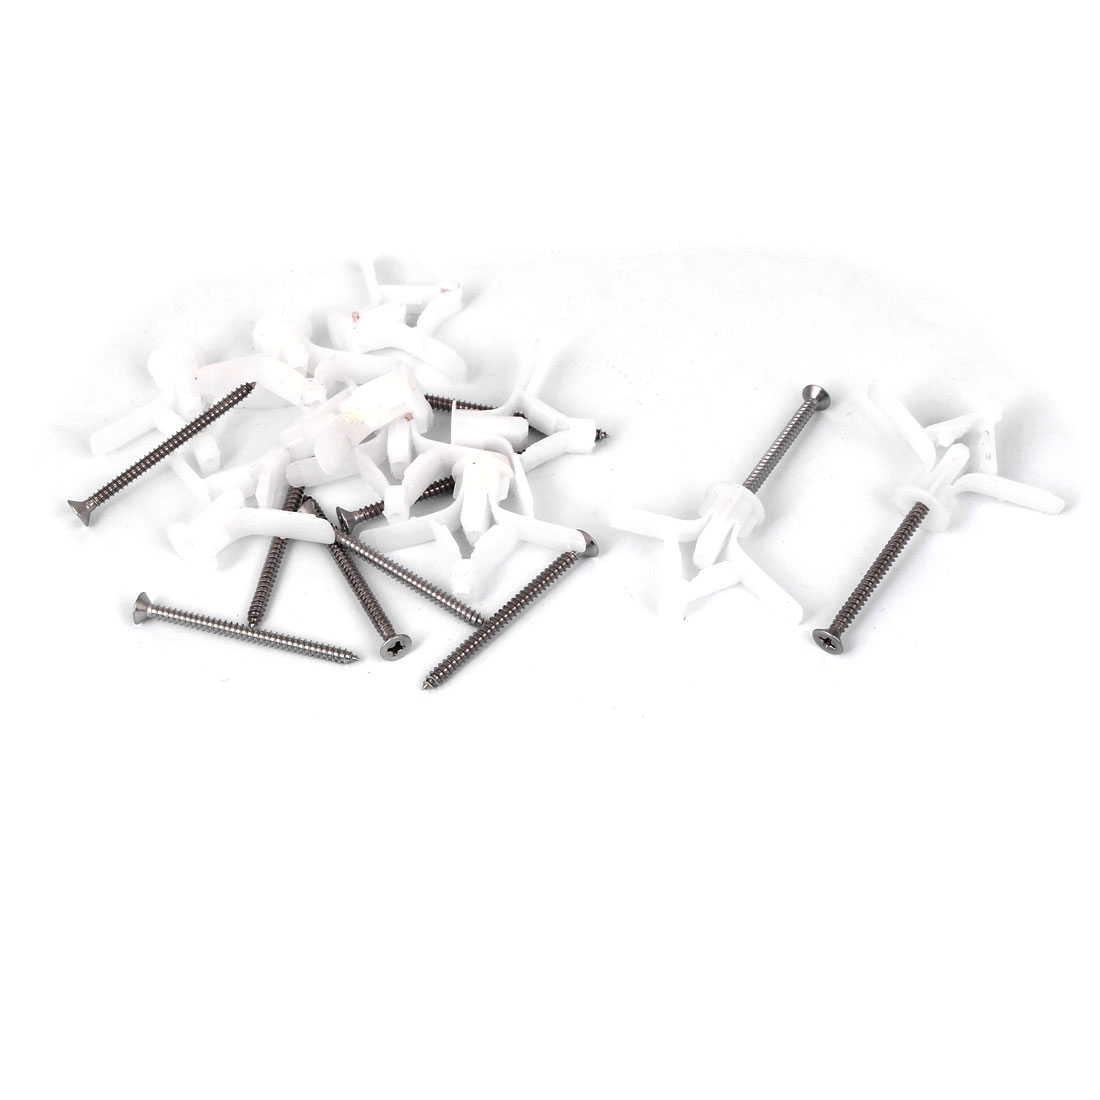 10pcs Plasterboard Fixings Airplane Expansion Tube Anchors w 50mm Long Screws